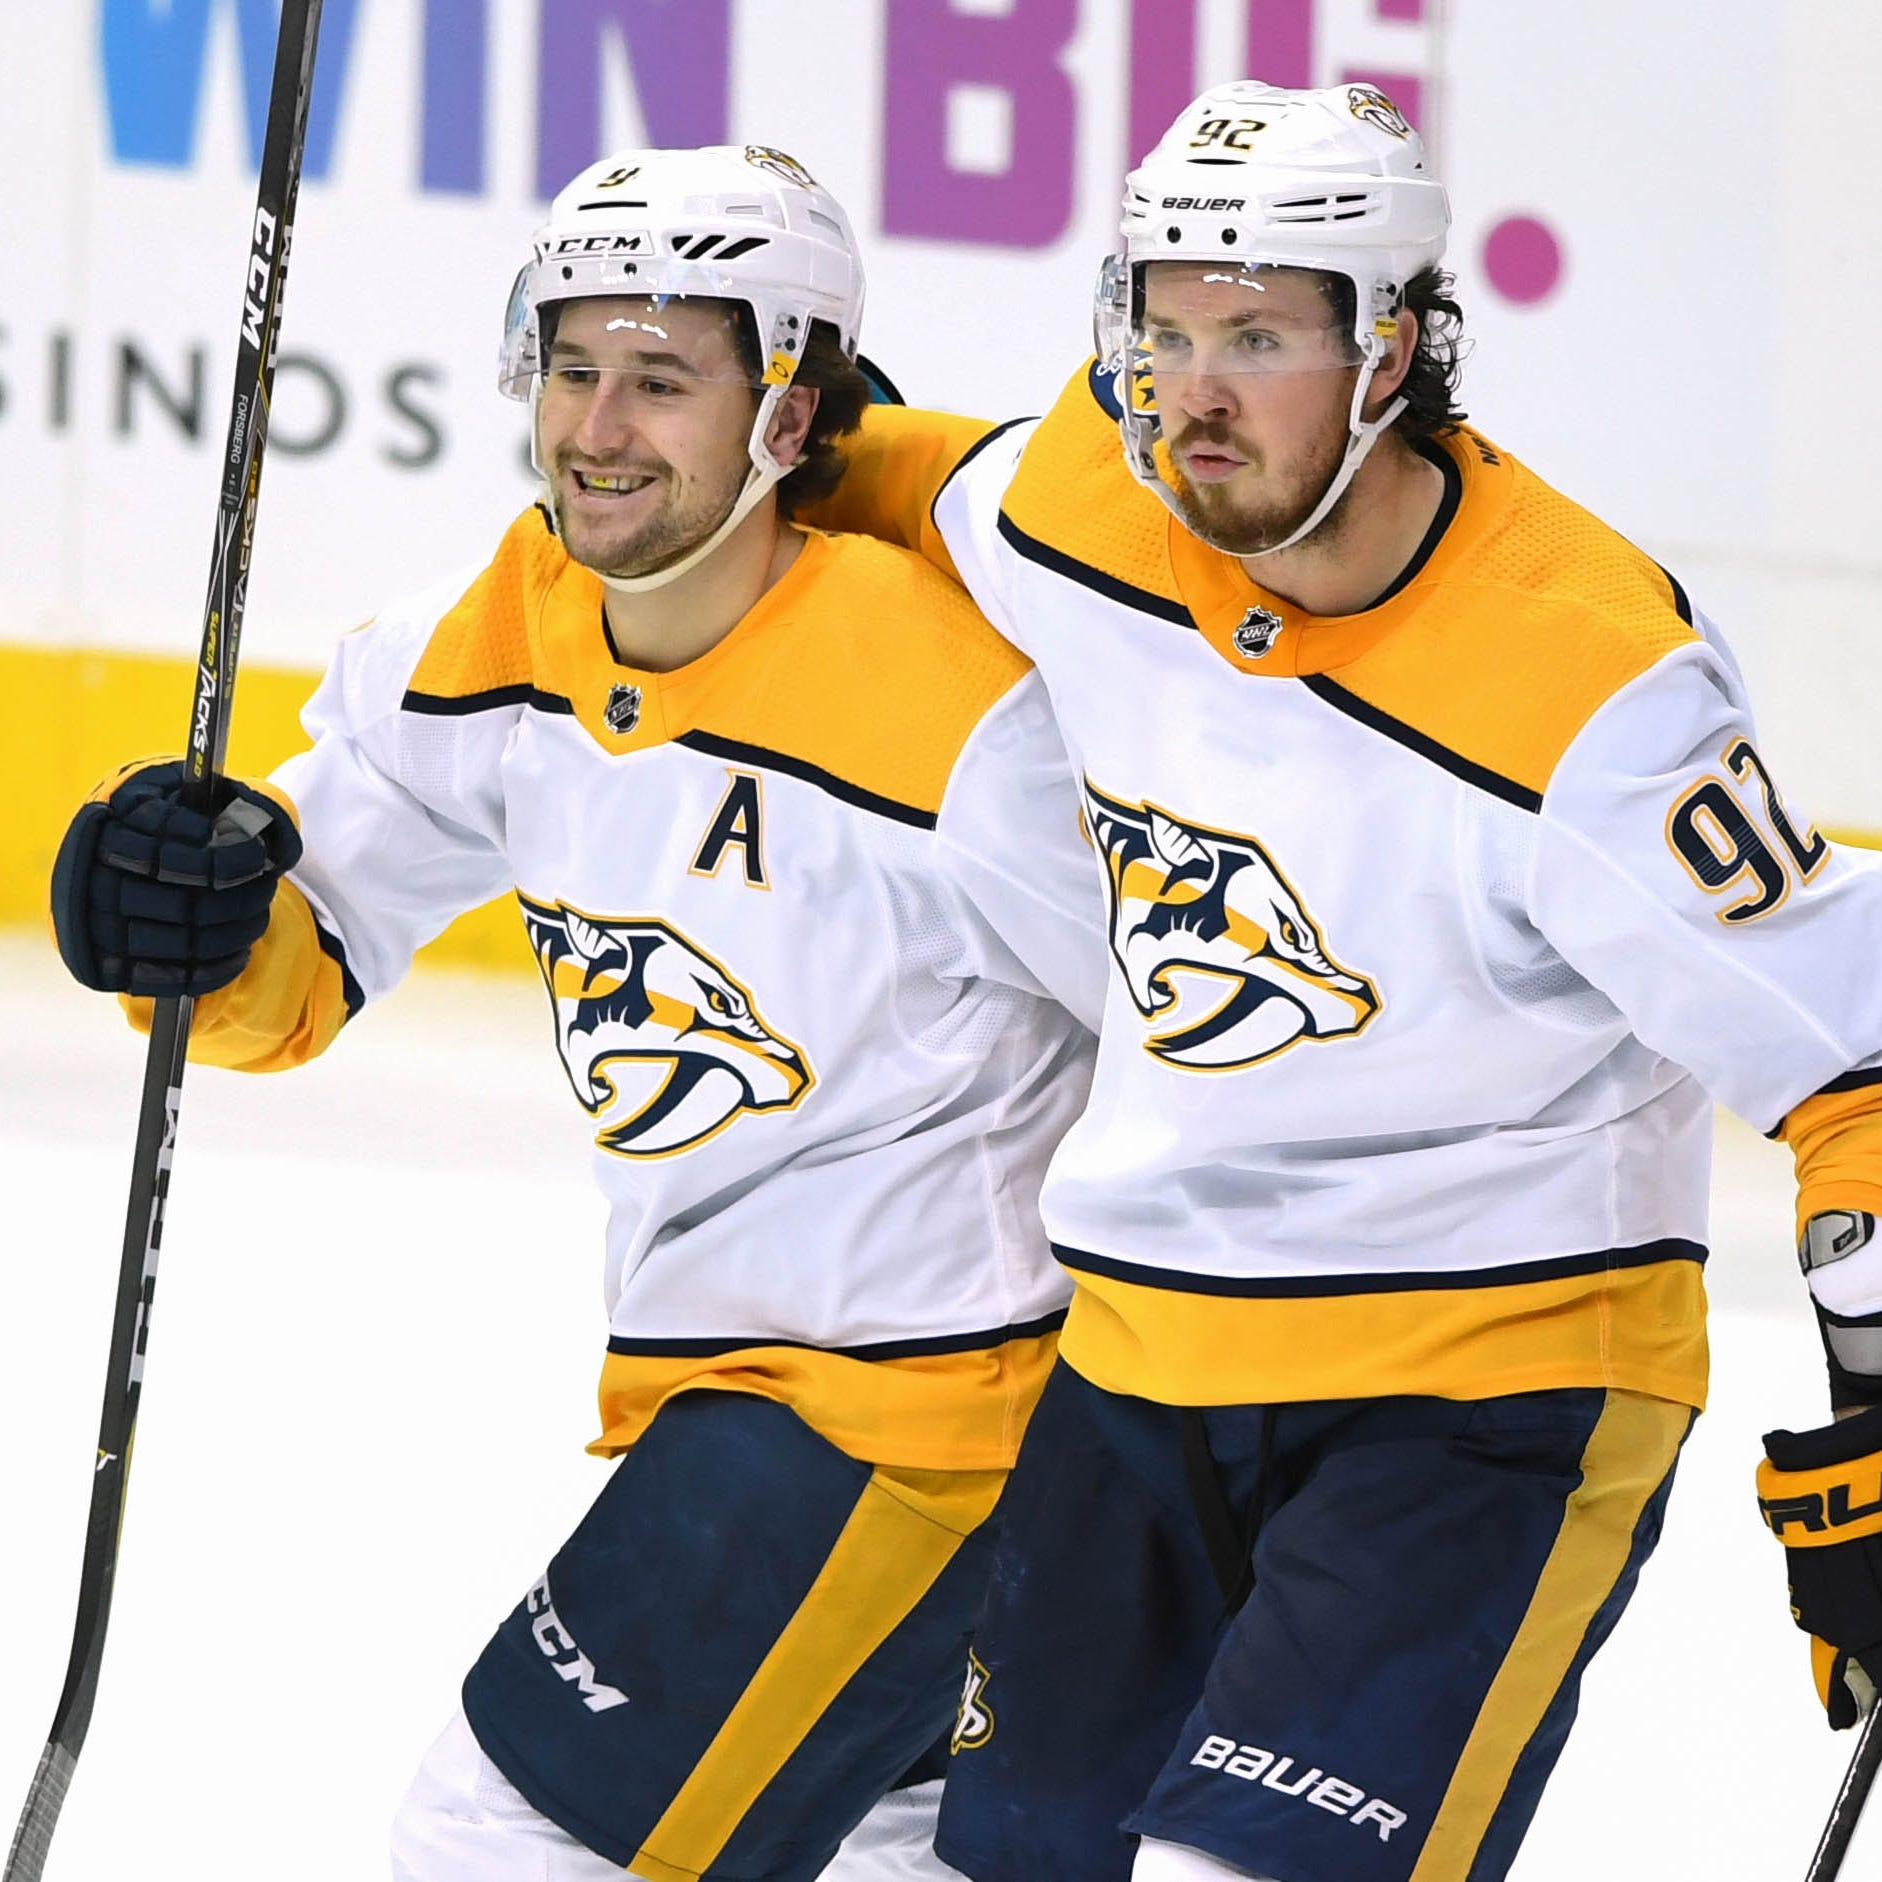 A look at who the Predators might protect in the 2021 expansion draft